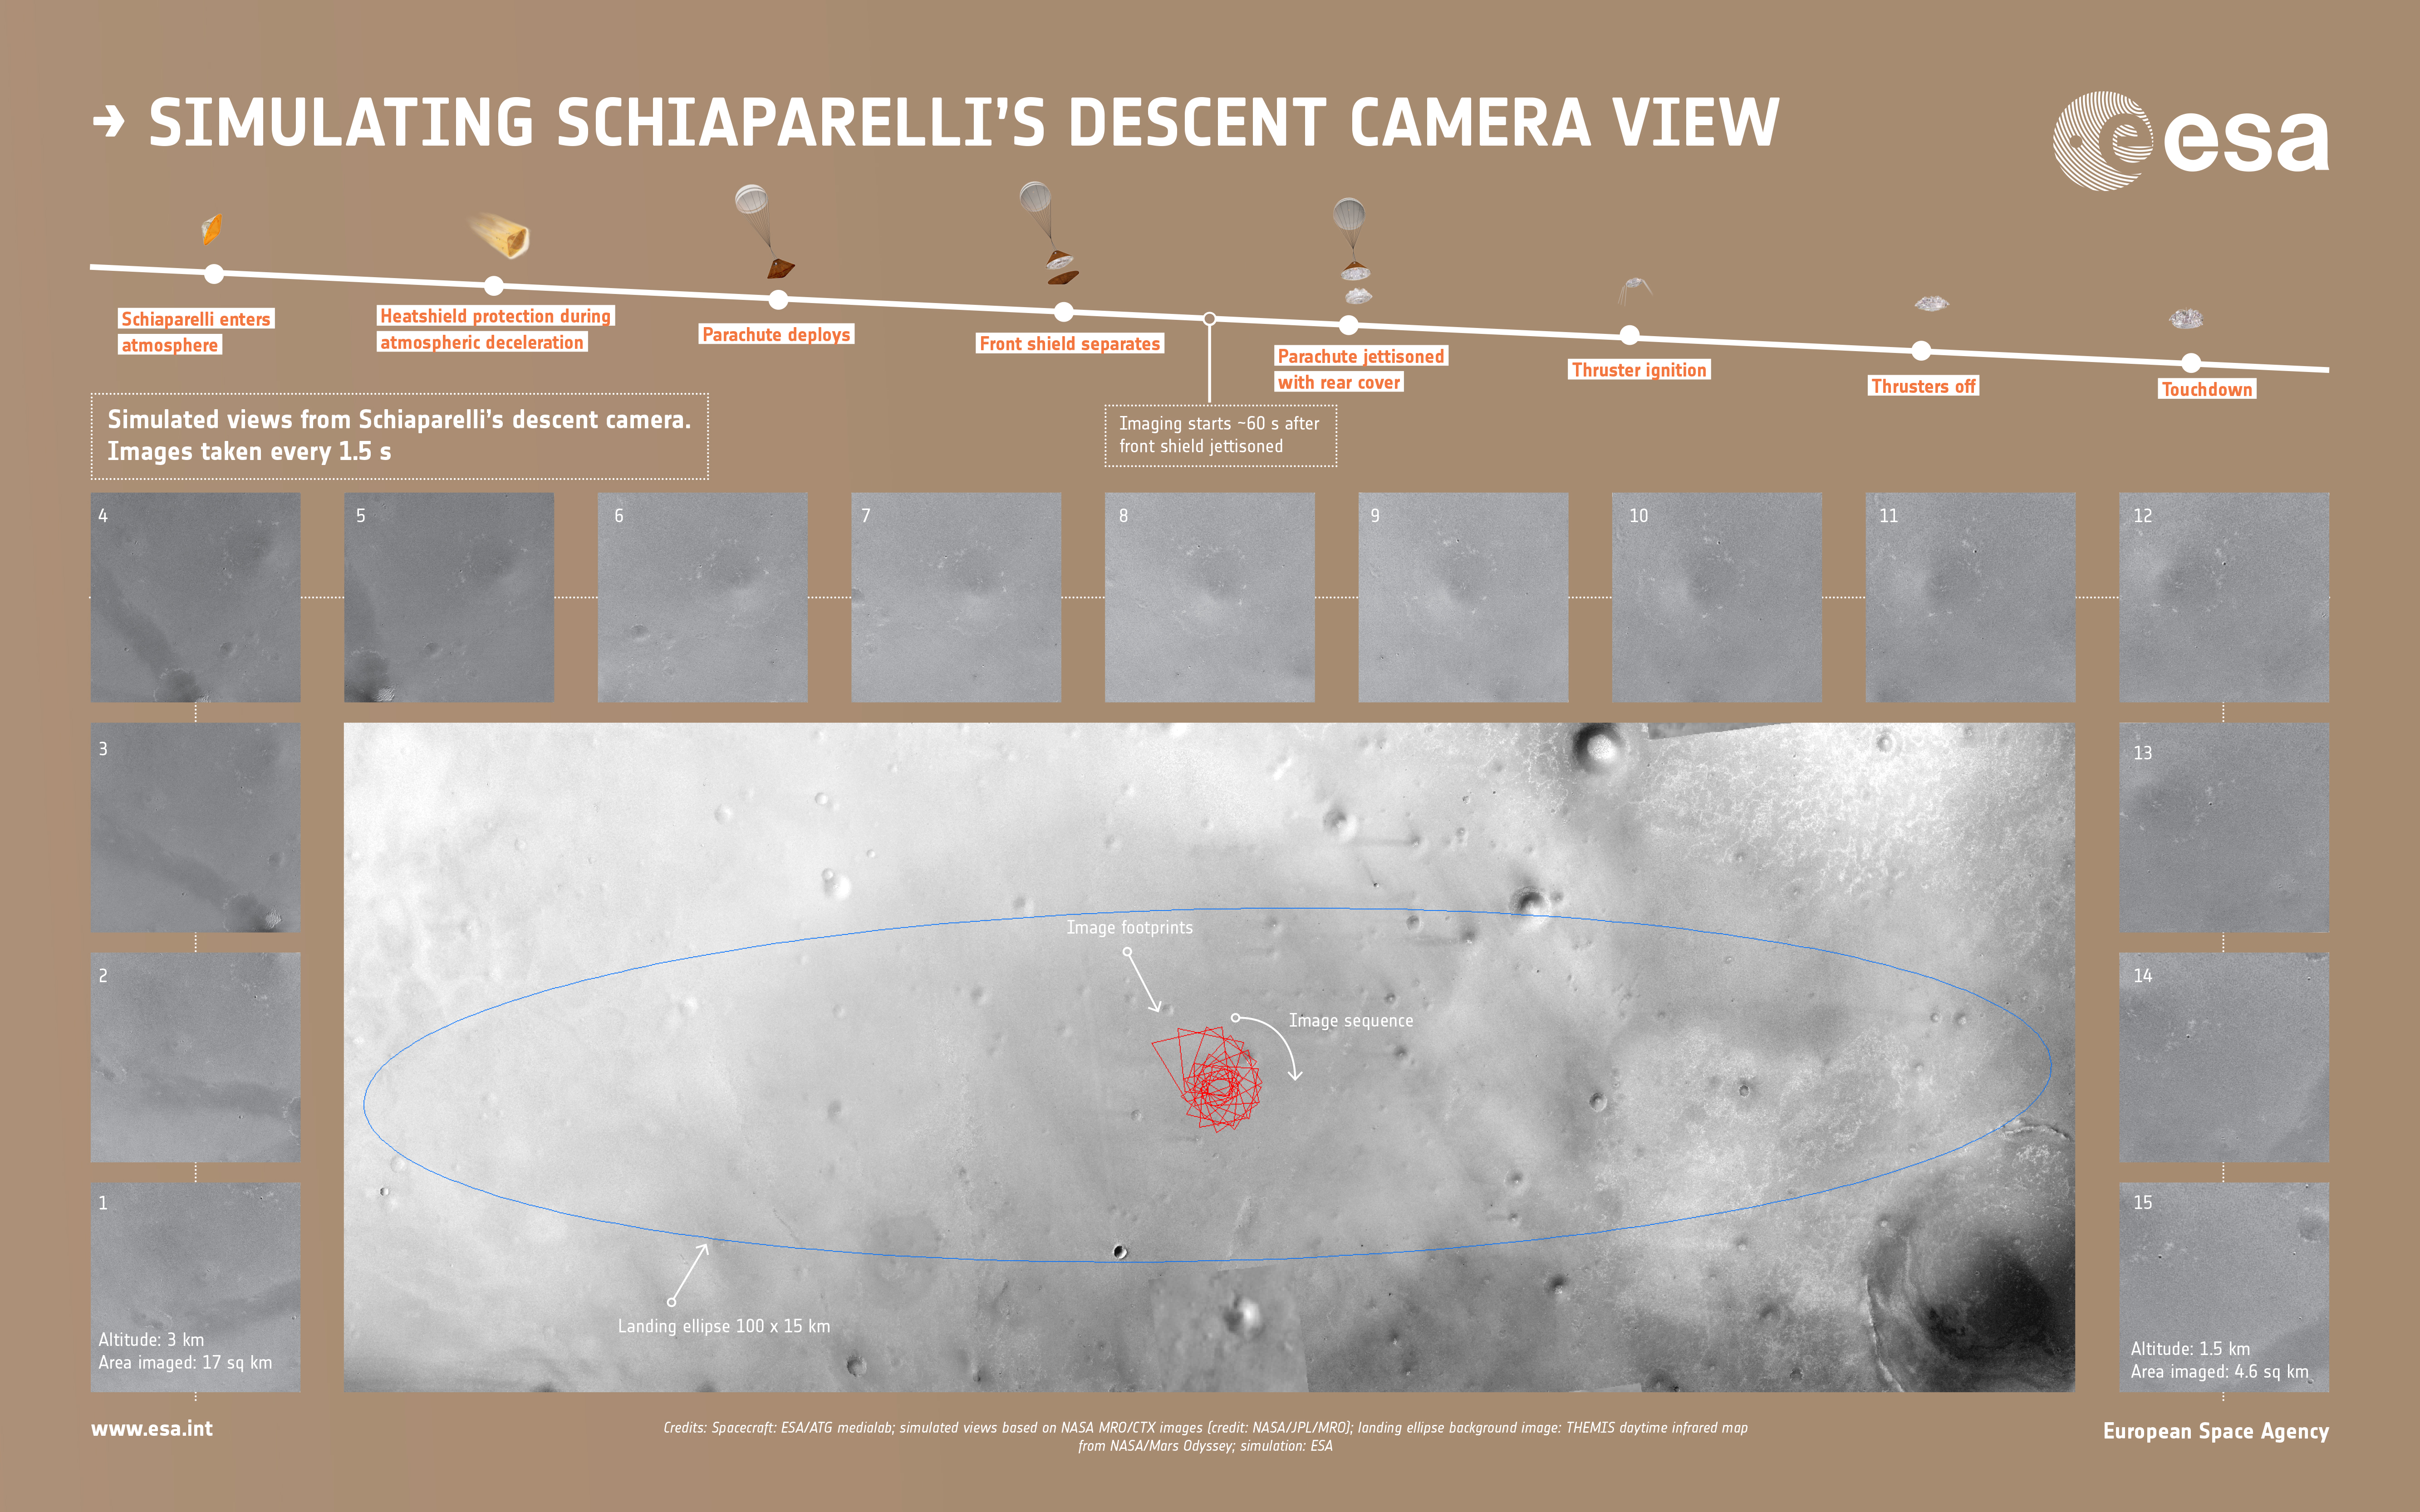 1567214593739-ExoMars2016_Schiaparelli_simulated_descent_image_sequence_infographic.jpg